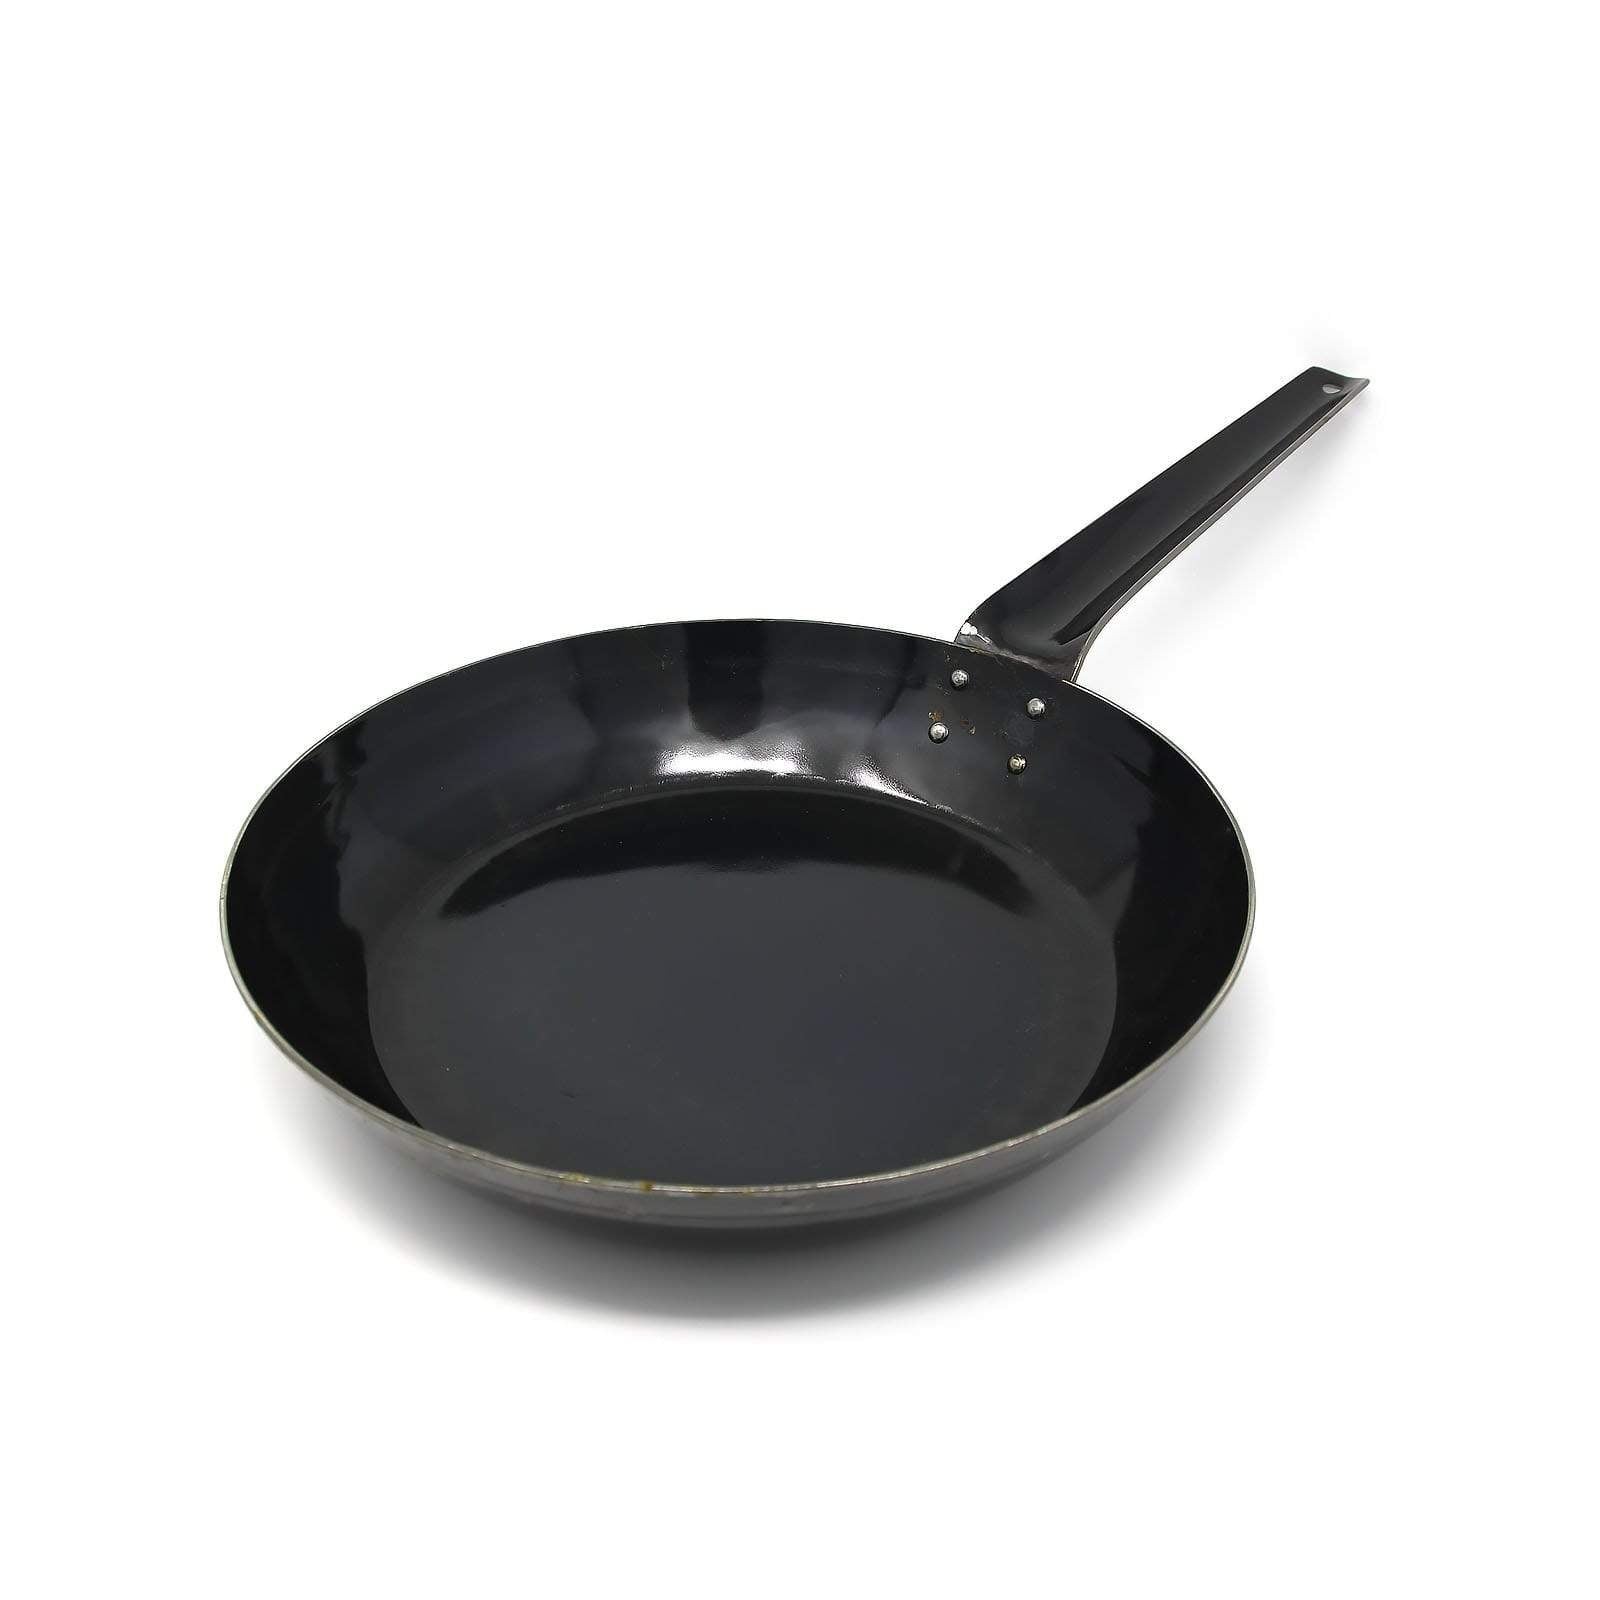 Yamada Hammered Iron Frying Pan (2.3mm Thickness) Frying Pans